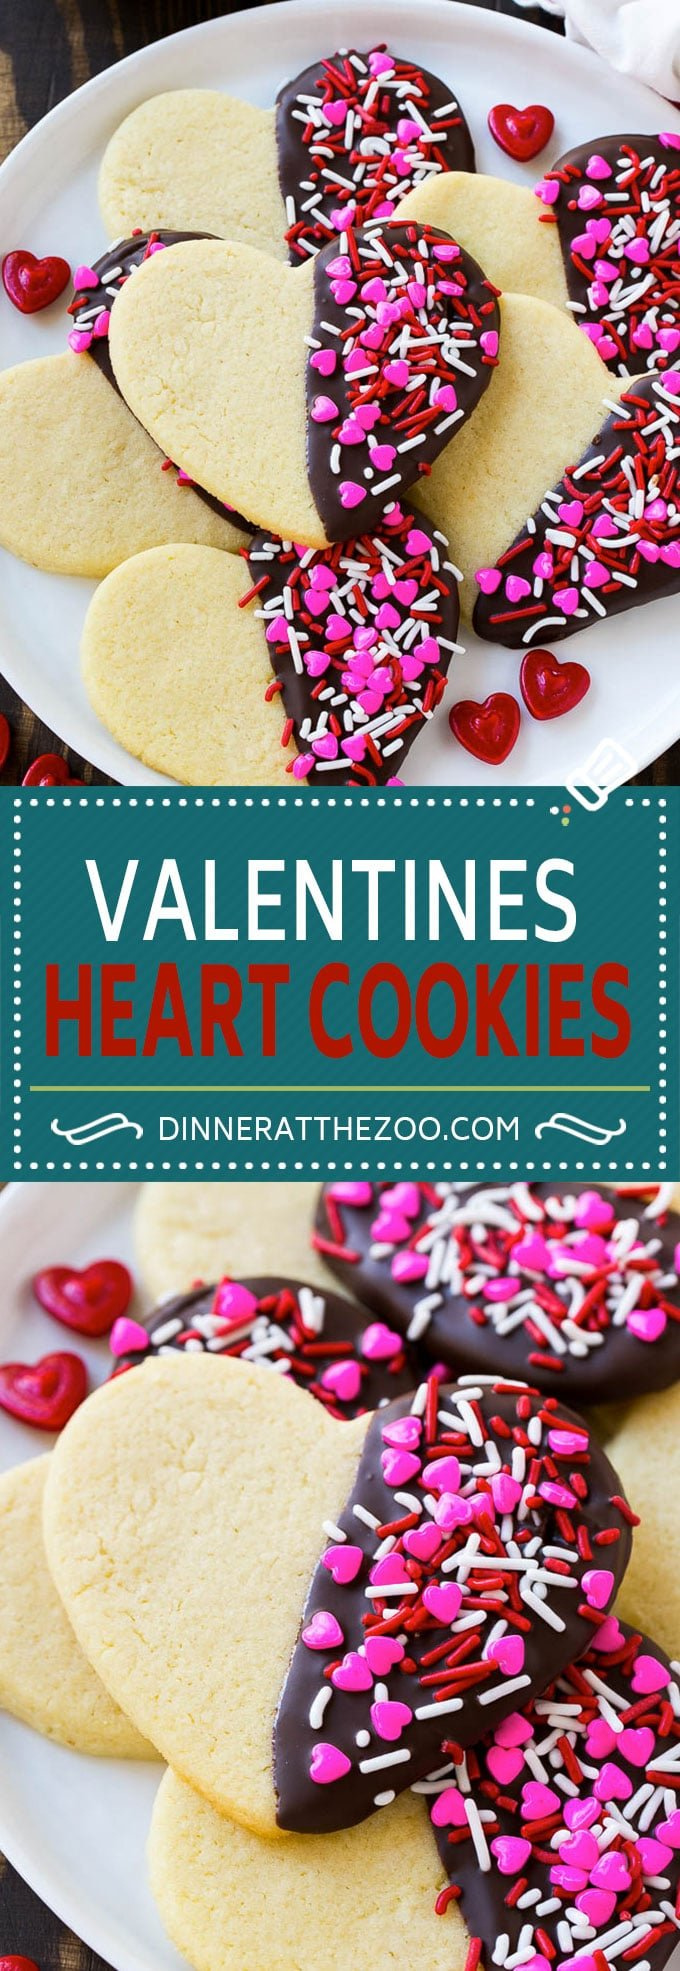 Heart Cookies Recipe | Heart Sugar Cookies | Valentine's Day Cookies | Heart Shaped Sugar Cookies | Valentine's Day Dessert #hearts #cookies #sugarcookies #valentinesday #sprinkles #dessert #dinneratthezoo